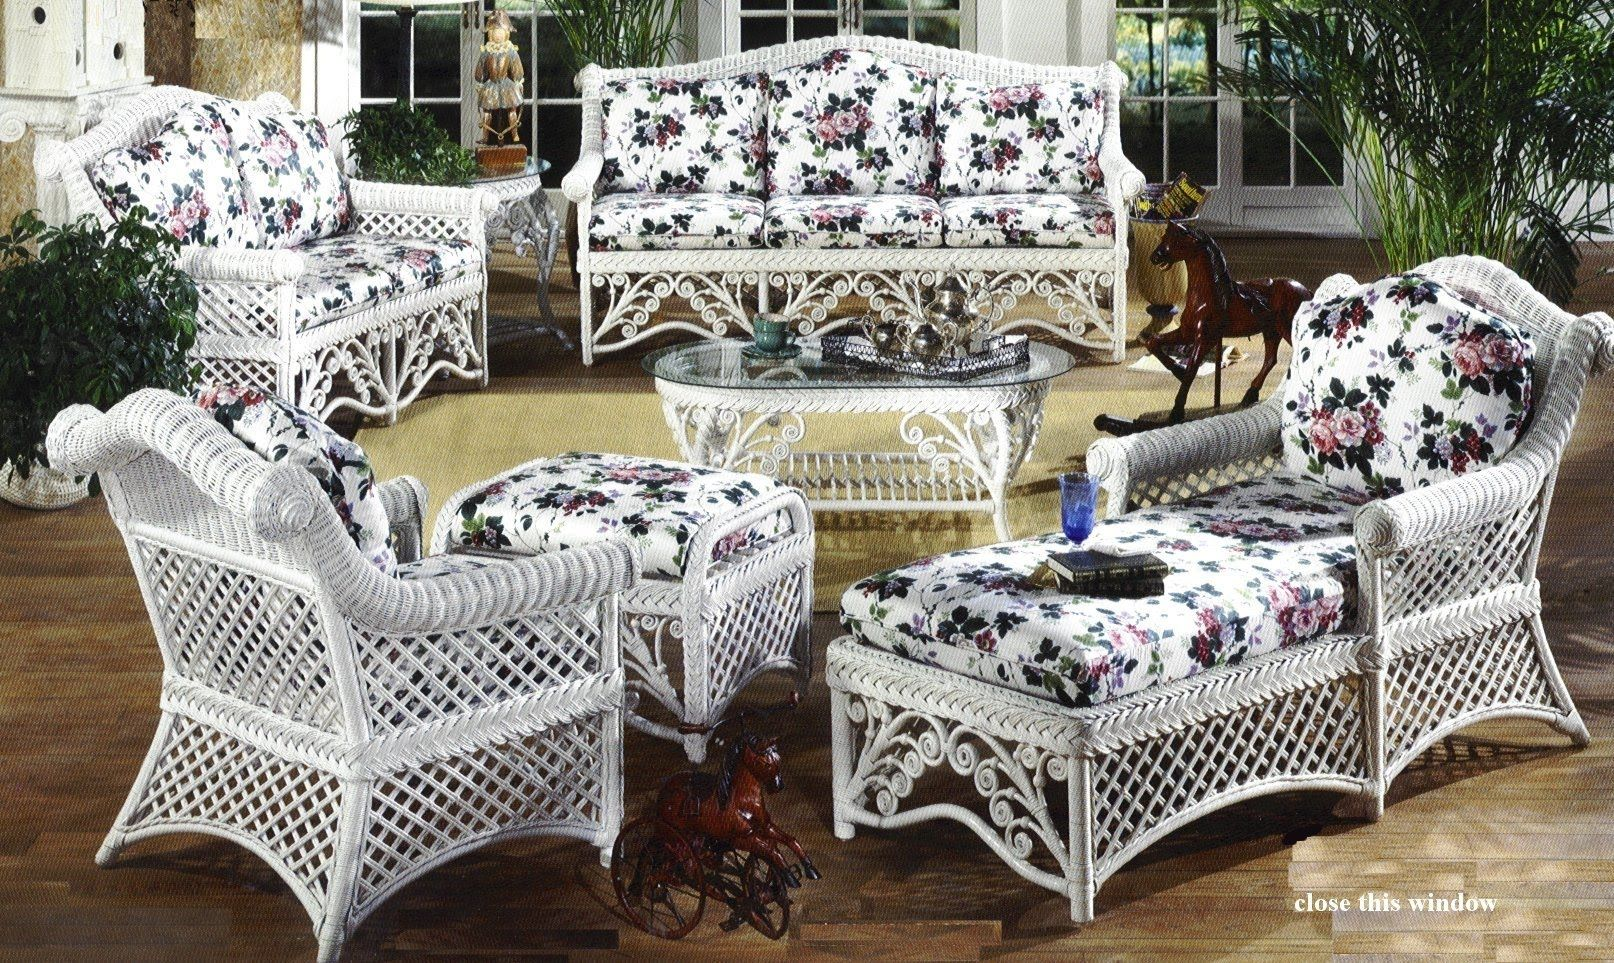 Superb Victorian Wicker Outdoor Furniture   Cool Storage Furniture Check More At  Http://cacophonouscreations